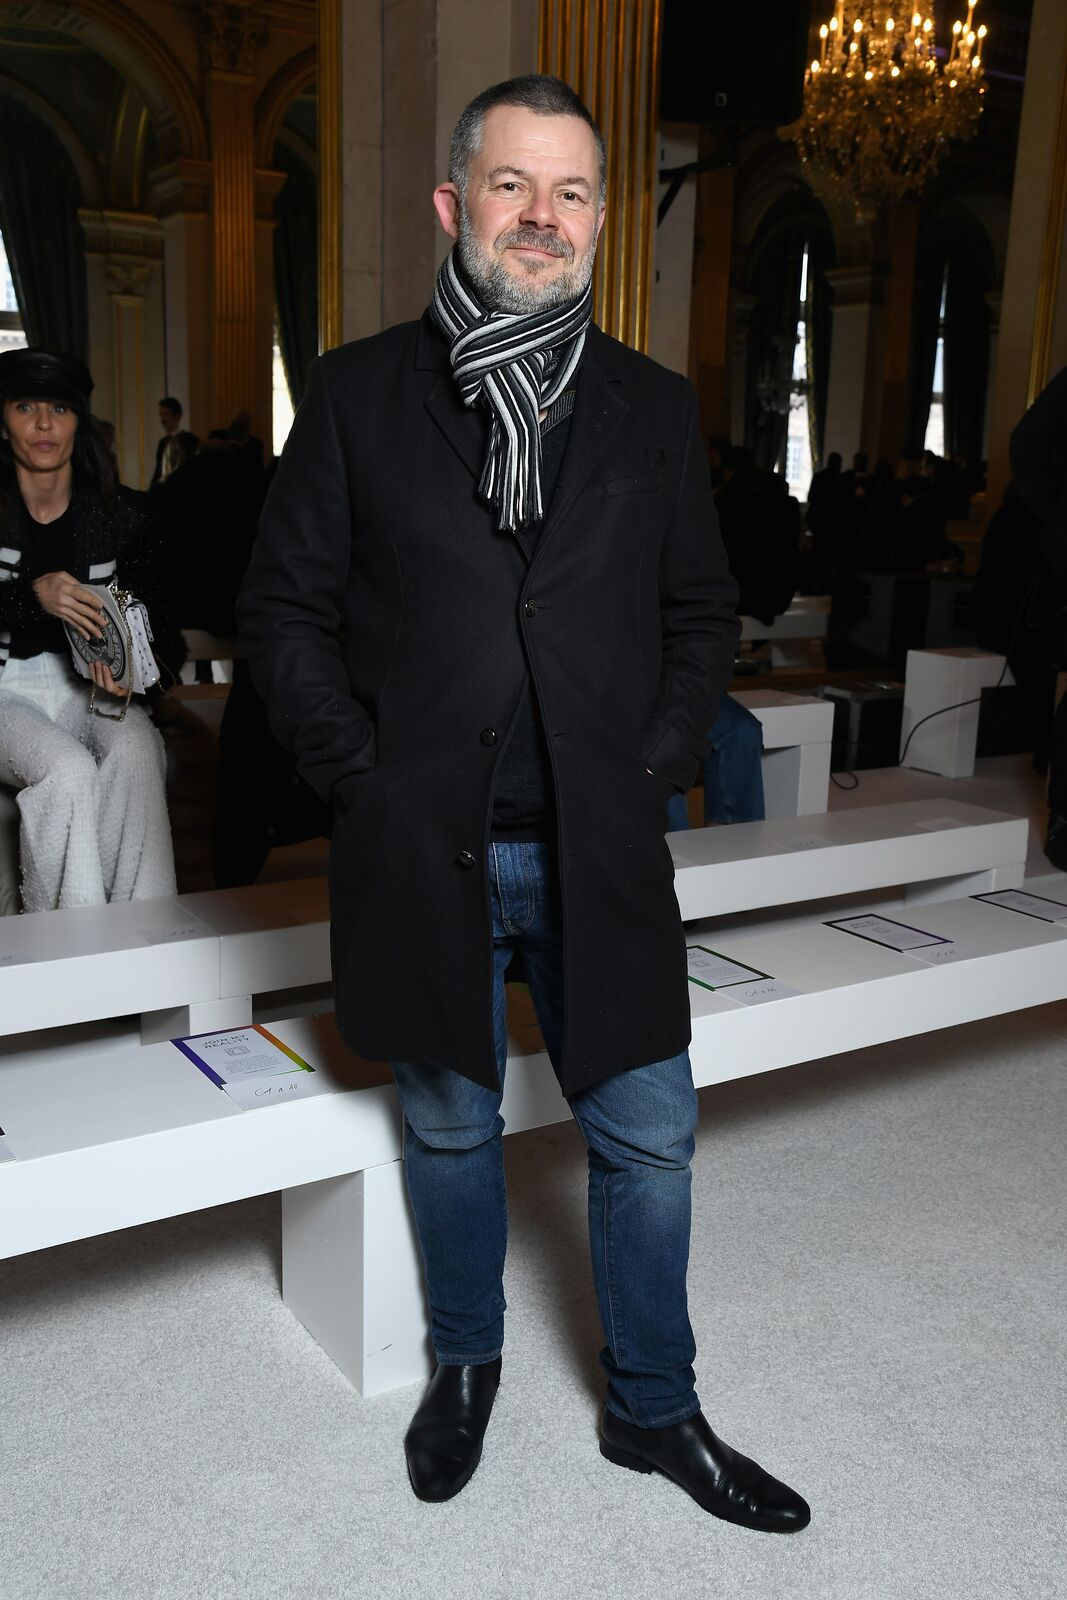 Eric Naulleau assiste au défilé Balmain dans le cadre de la Fashion Week de Paris Automne / Hiver 2018/2019 à Paris, France. | Photo : Getty Images